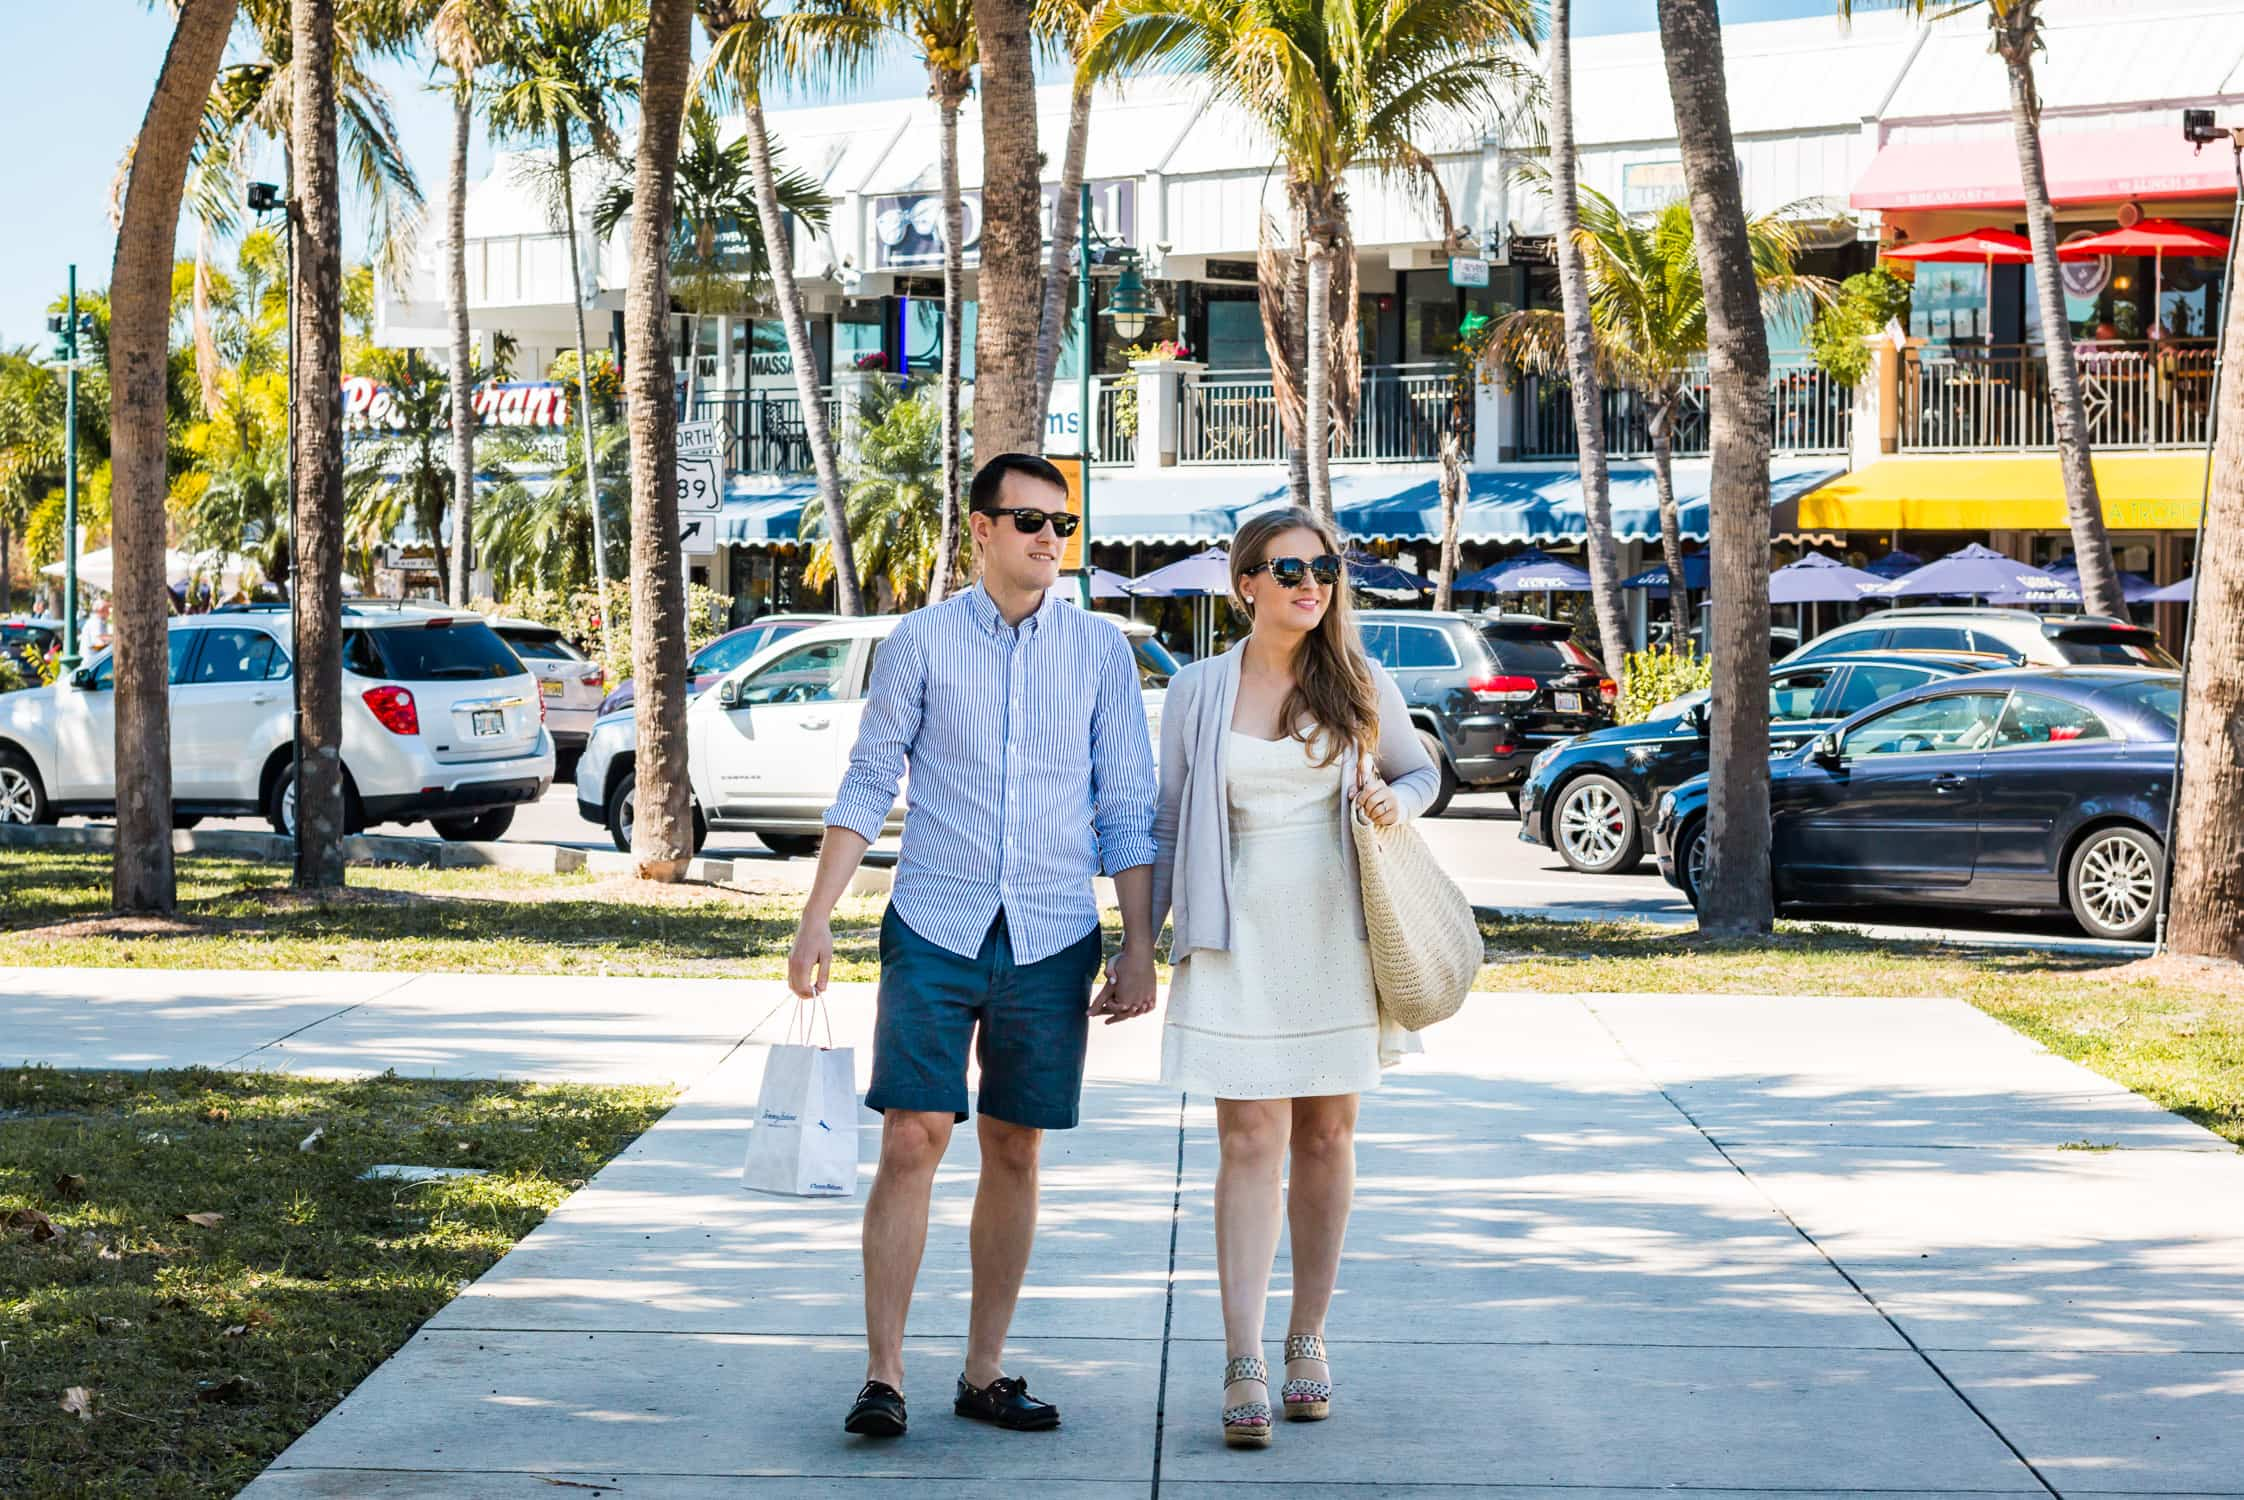 How to plan a romantic weekend getaway in Longboat Key, Florida, including a relaxing stay at The Resort at Longboat Key Club! #LoveFL sponsored by @visitflorida | Shopping at St. Armands Circle | Florida travel tips, beach vacation, vacation ideas, vacation goals, travel blogger Ashley Brooke Nicholas, Florida travel guide, Longboat Key travel guide, Sarasota travel guide, beautiful beaches, boating, affordable travel, US travel, summer vacation, spring break ideas, romantic vacation